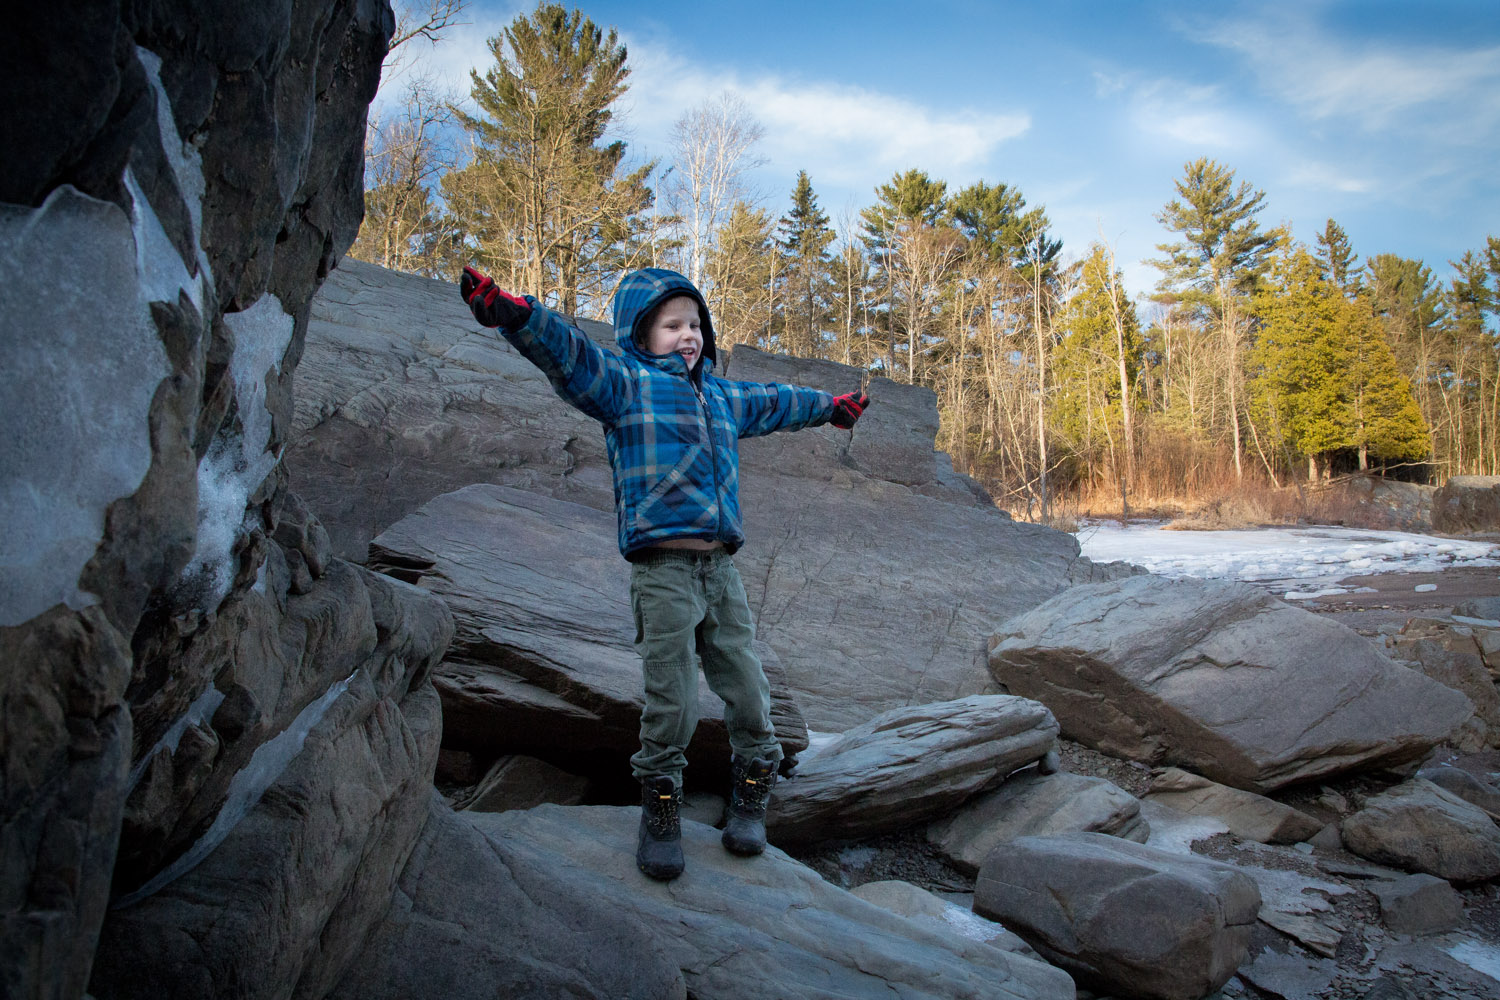 He is happiest when climbing around on giant rocks!